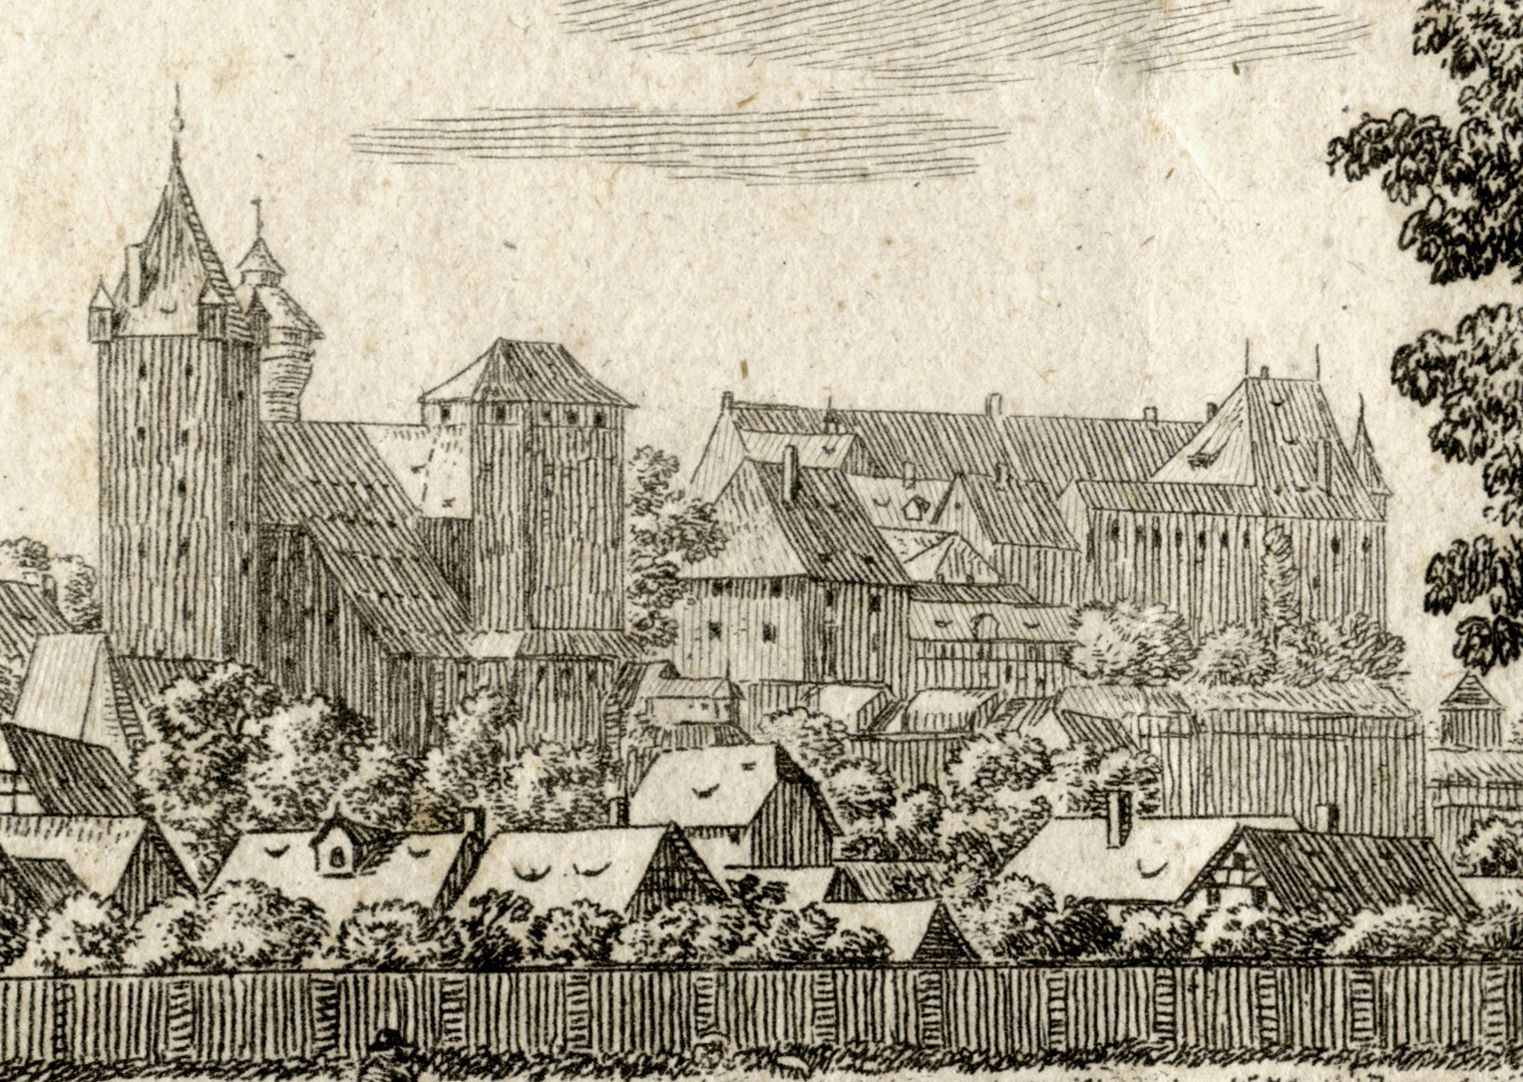 The castle in Nuremberg, seen from Judenbühl View of the castle from the northeast